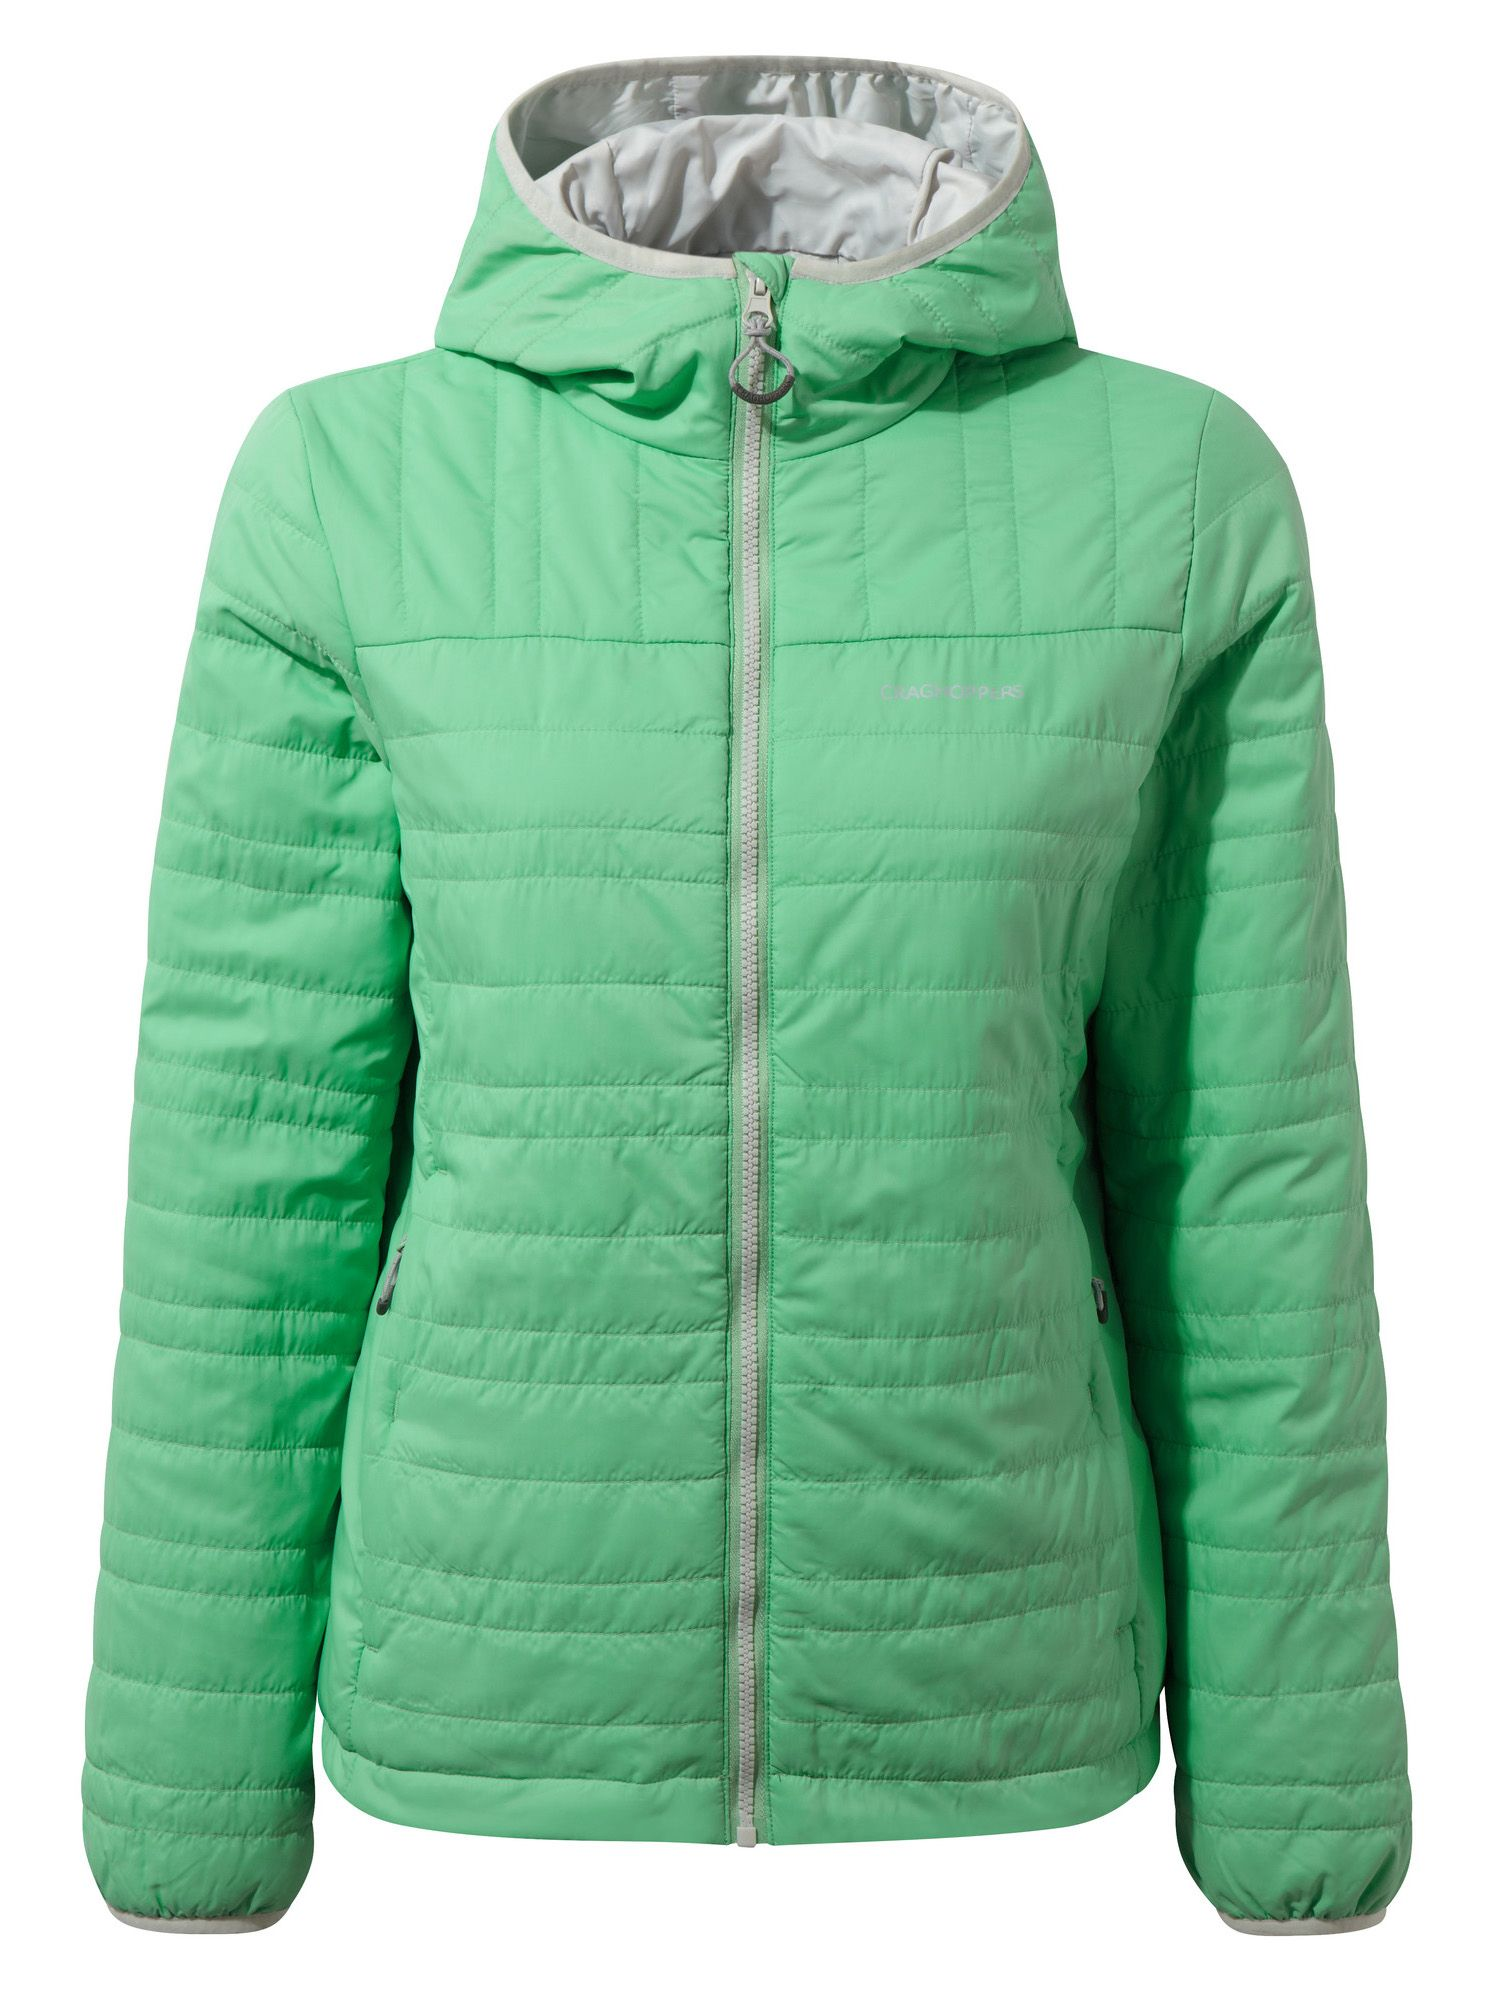 Craghoppers CompressLite Lightweight Jacket II, Green